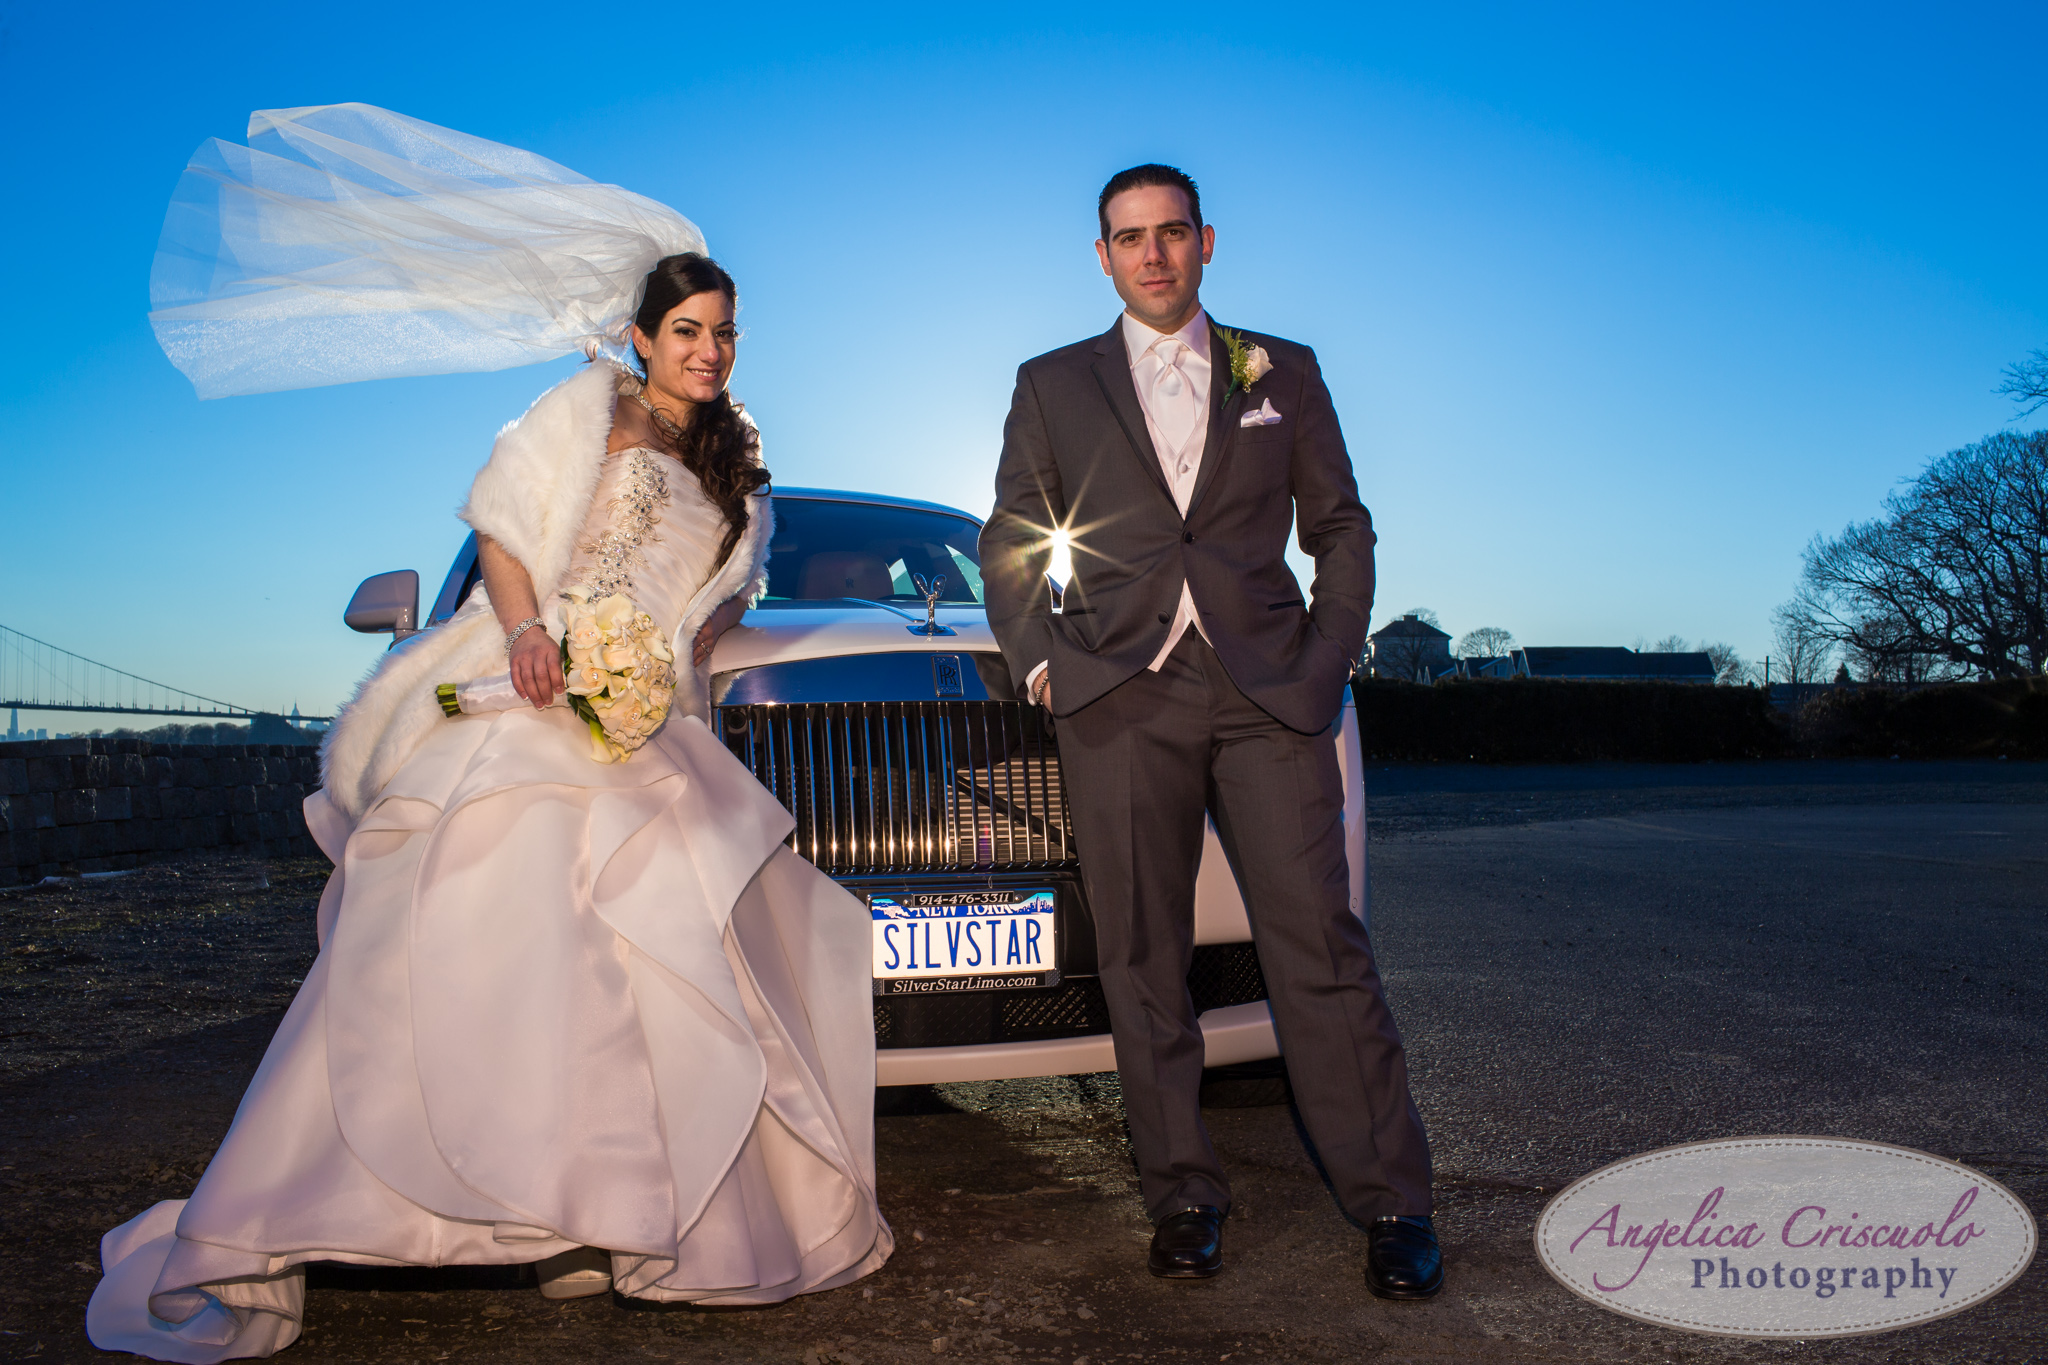 New York Wedding Photographer Marina Del Rey Rolls Royce Silver Star Limousine